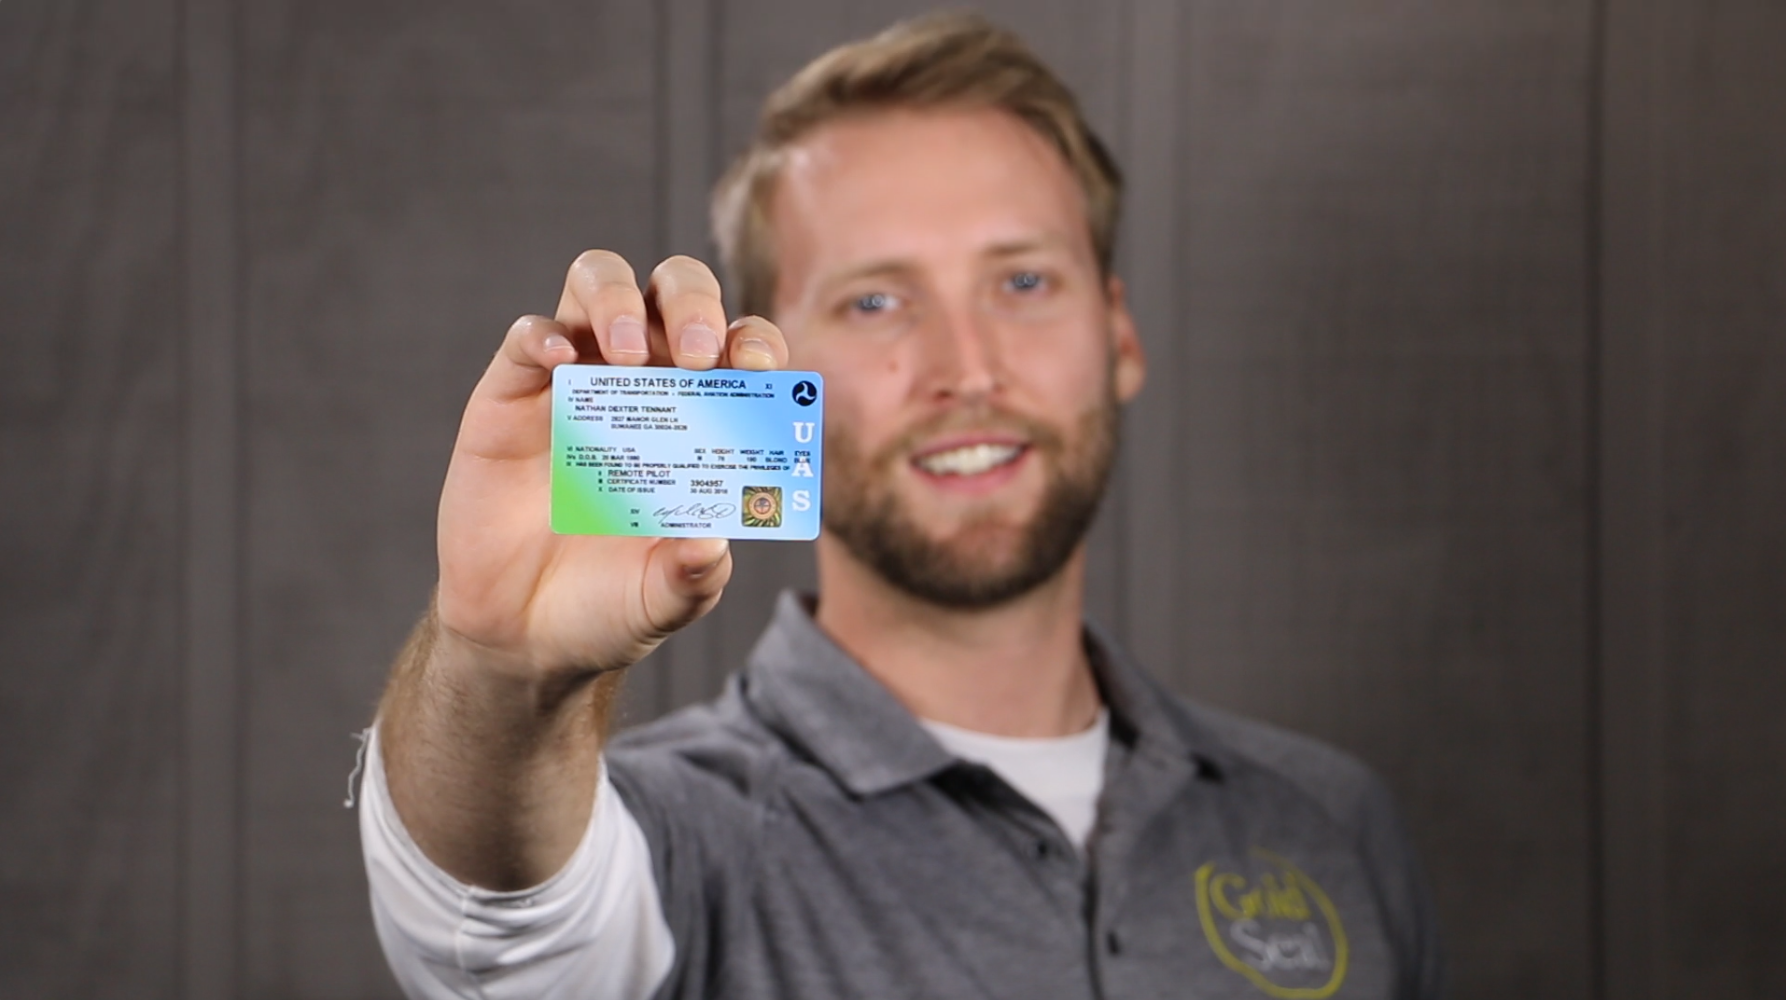 Nate Tennant of Gold Seal's UAVGroundSchool shows off his FAA Part 107 license.